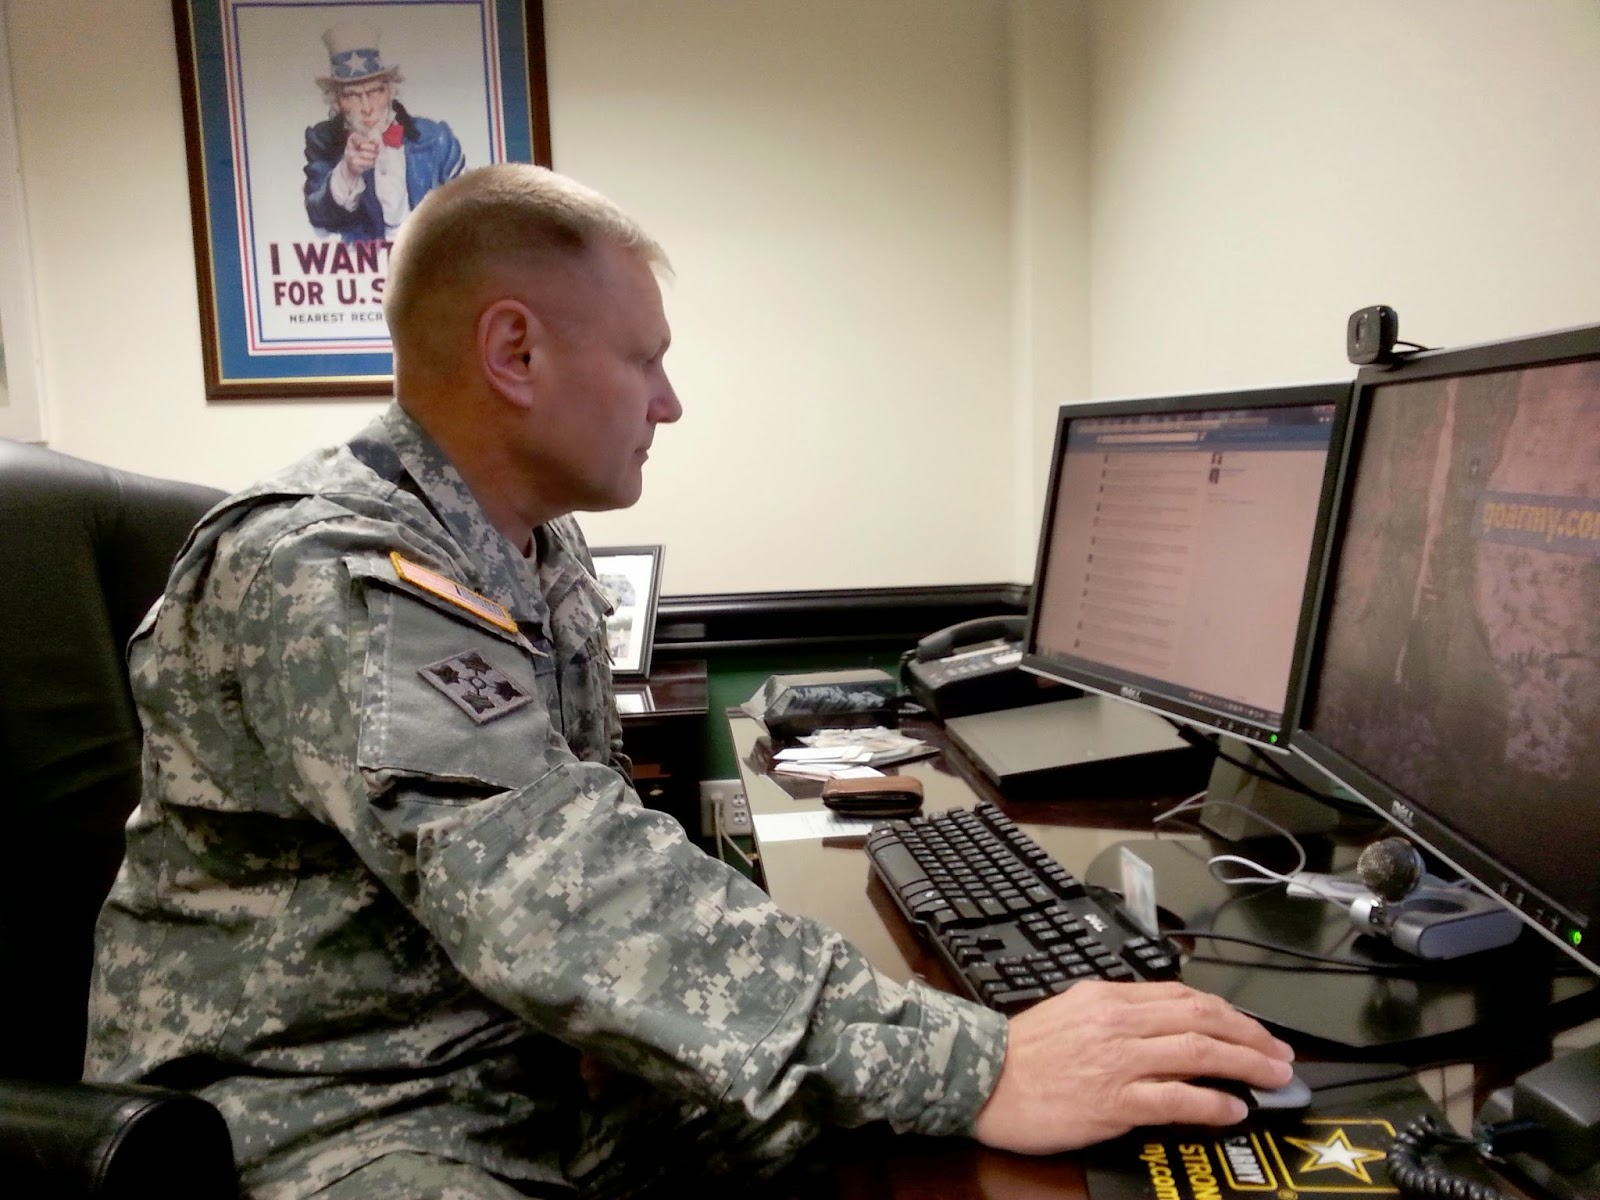 Looks - With meeting army recruiter what to wear video